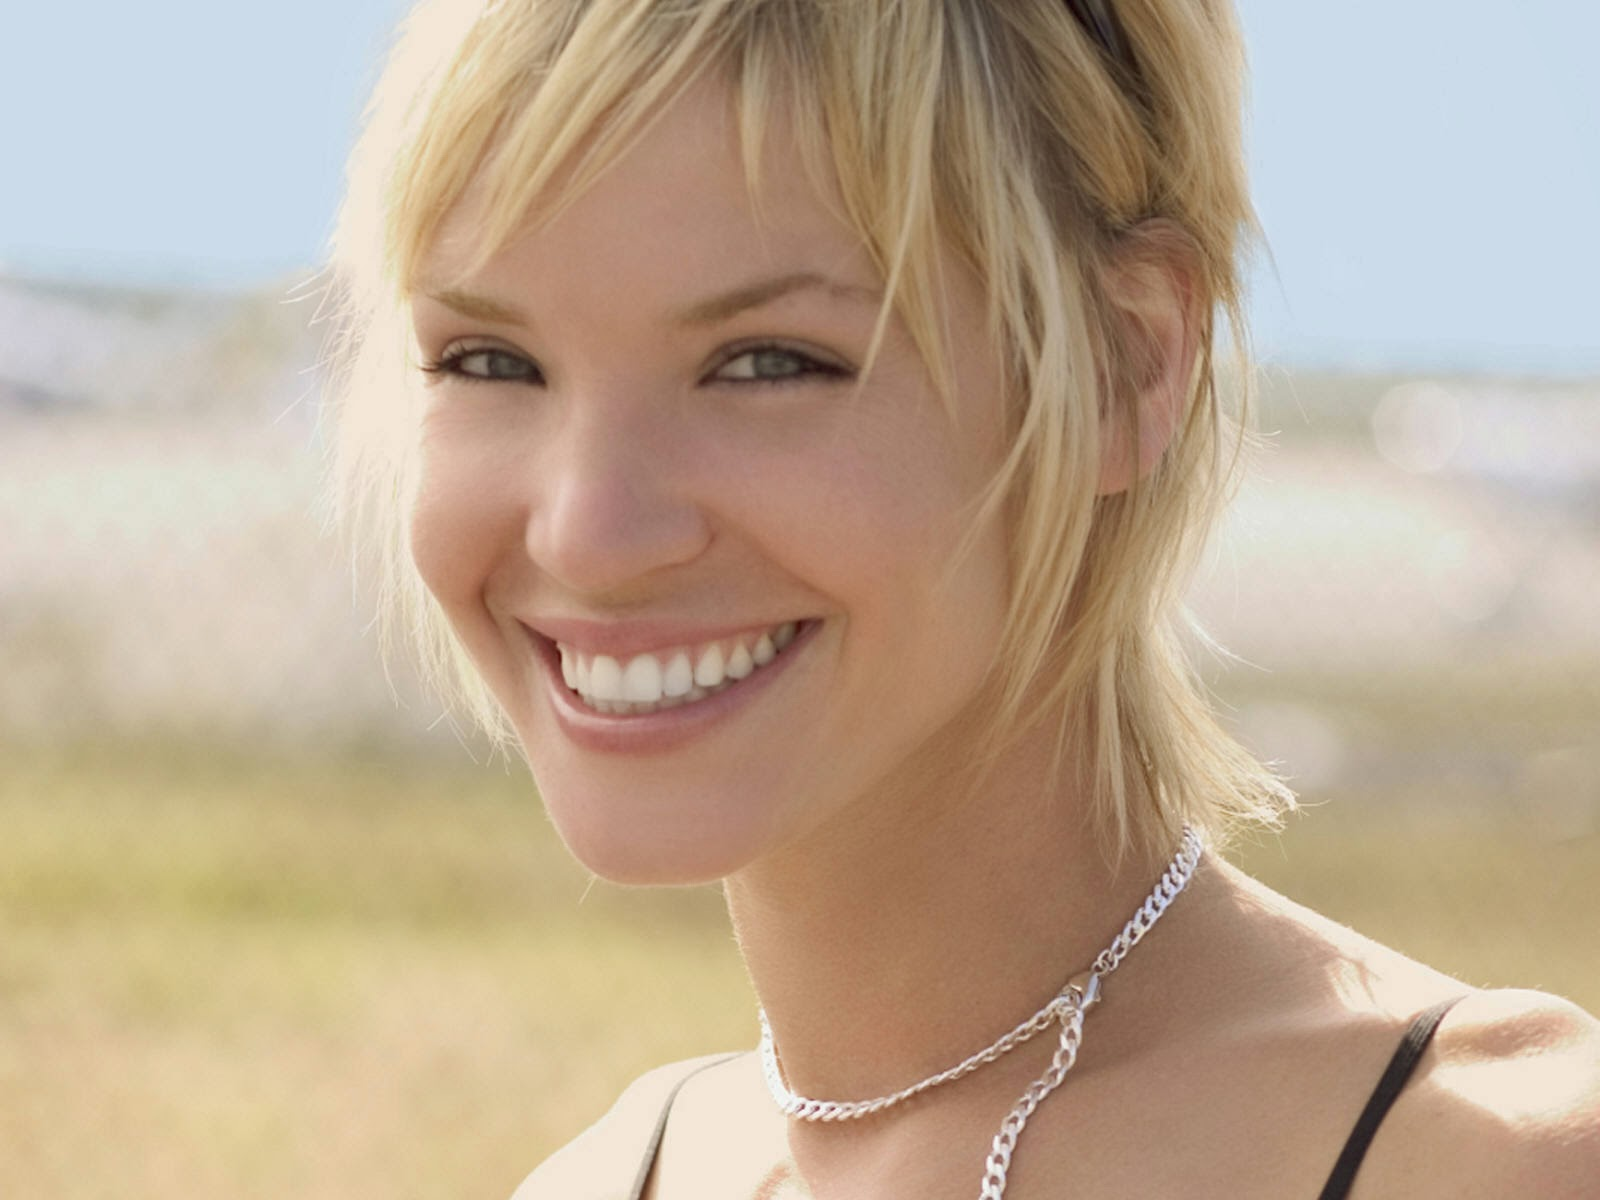 ashley scott computer wallpaper 1310